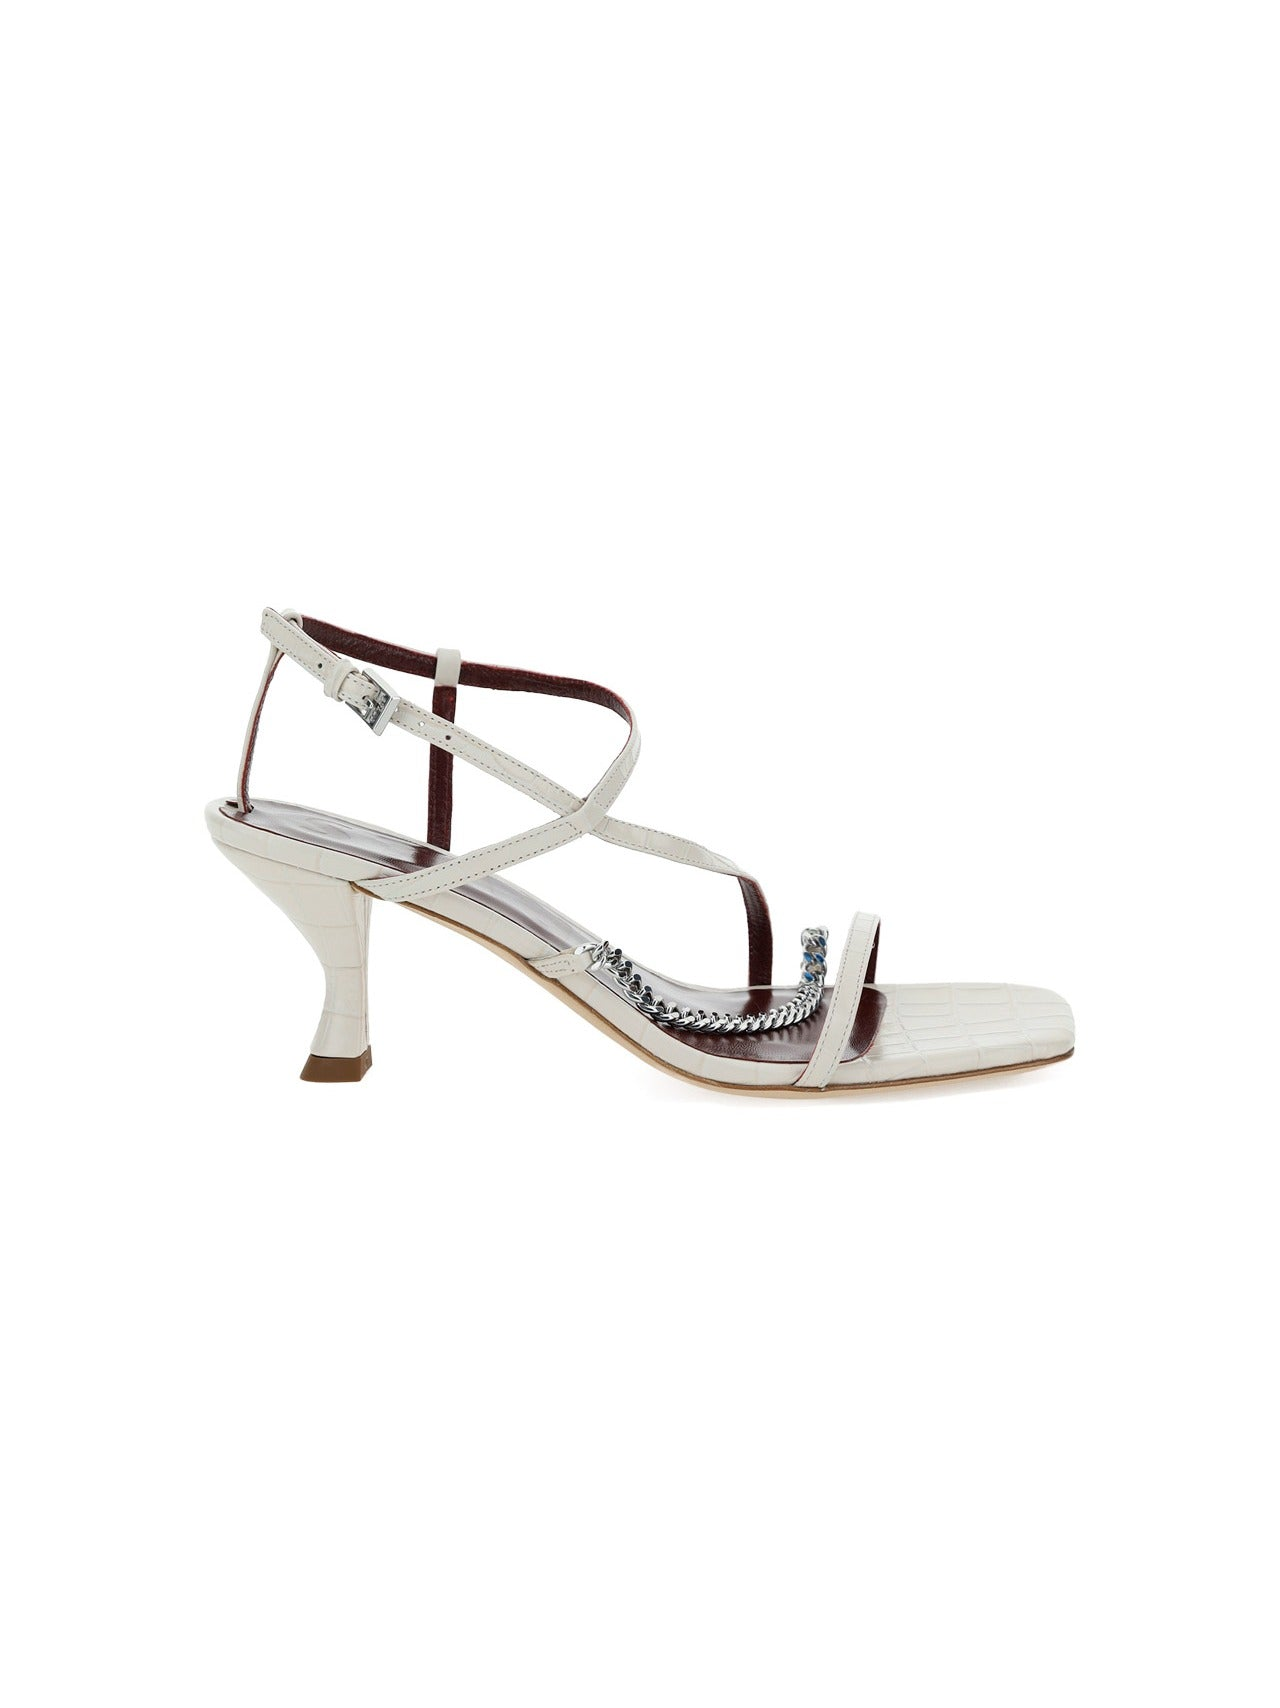 Staud STAUD CHAIN LINK ANKLE STRAP SANDALS